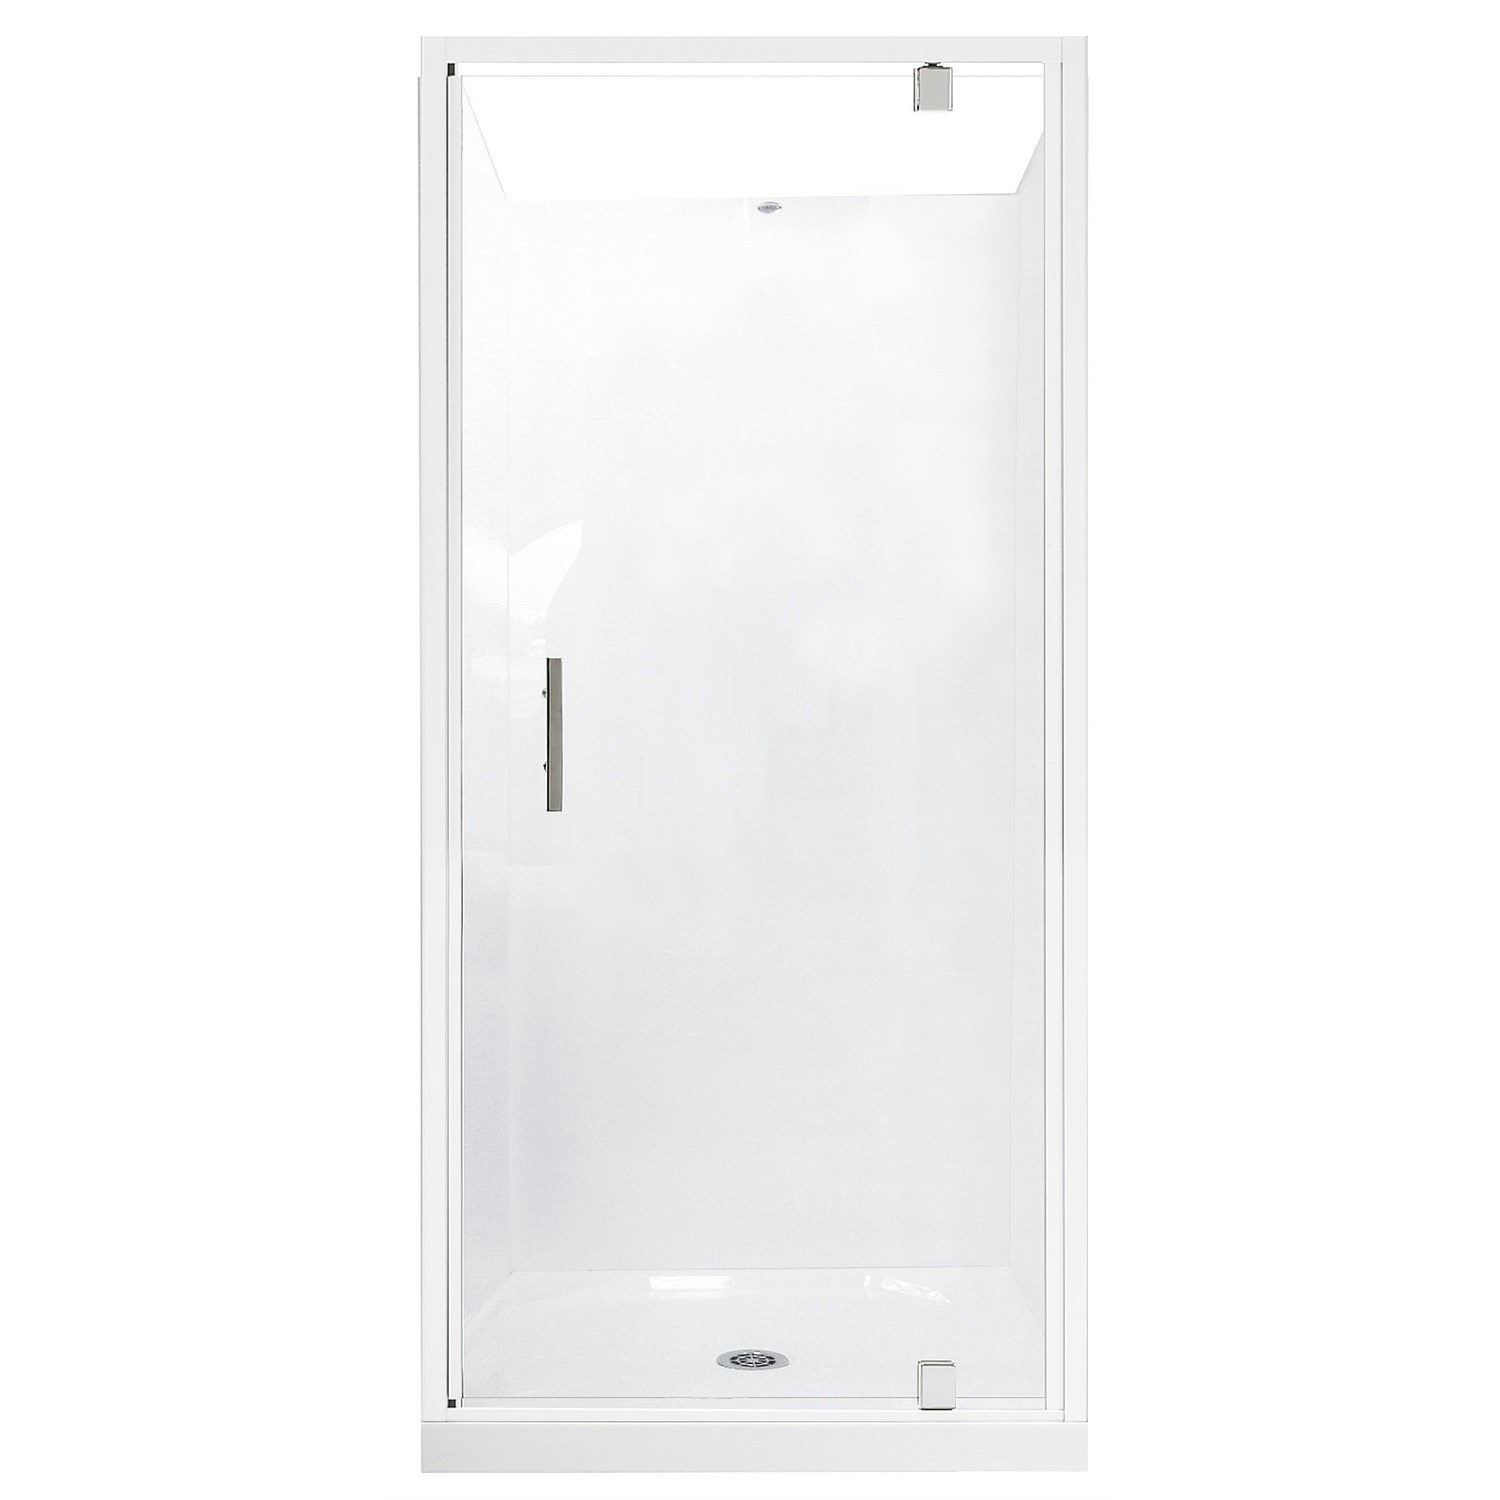 Showers | Plumbing World - Clearlite Induro 900mm 3 Sided Shower ...